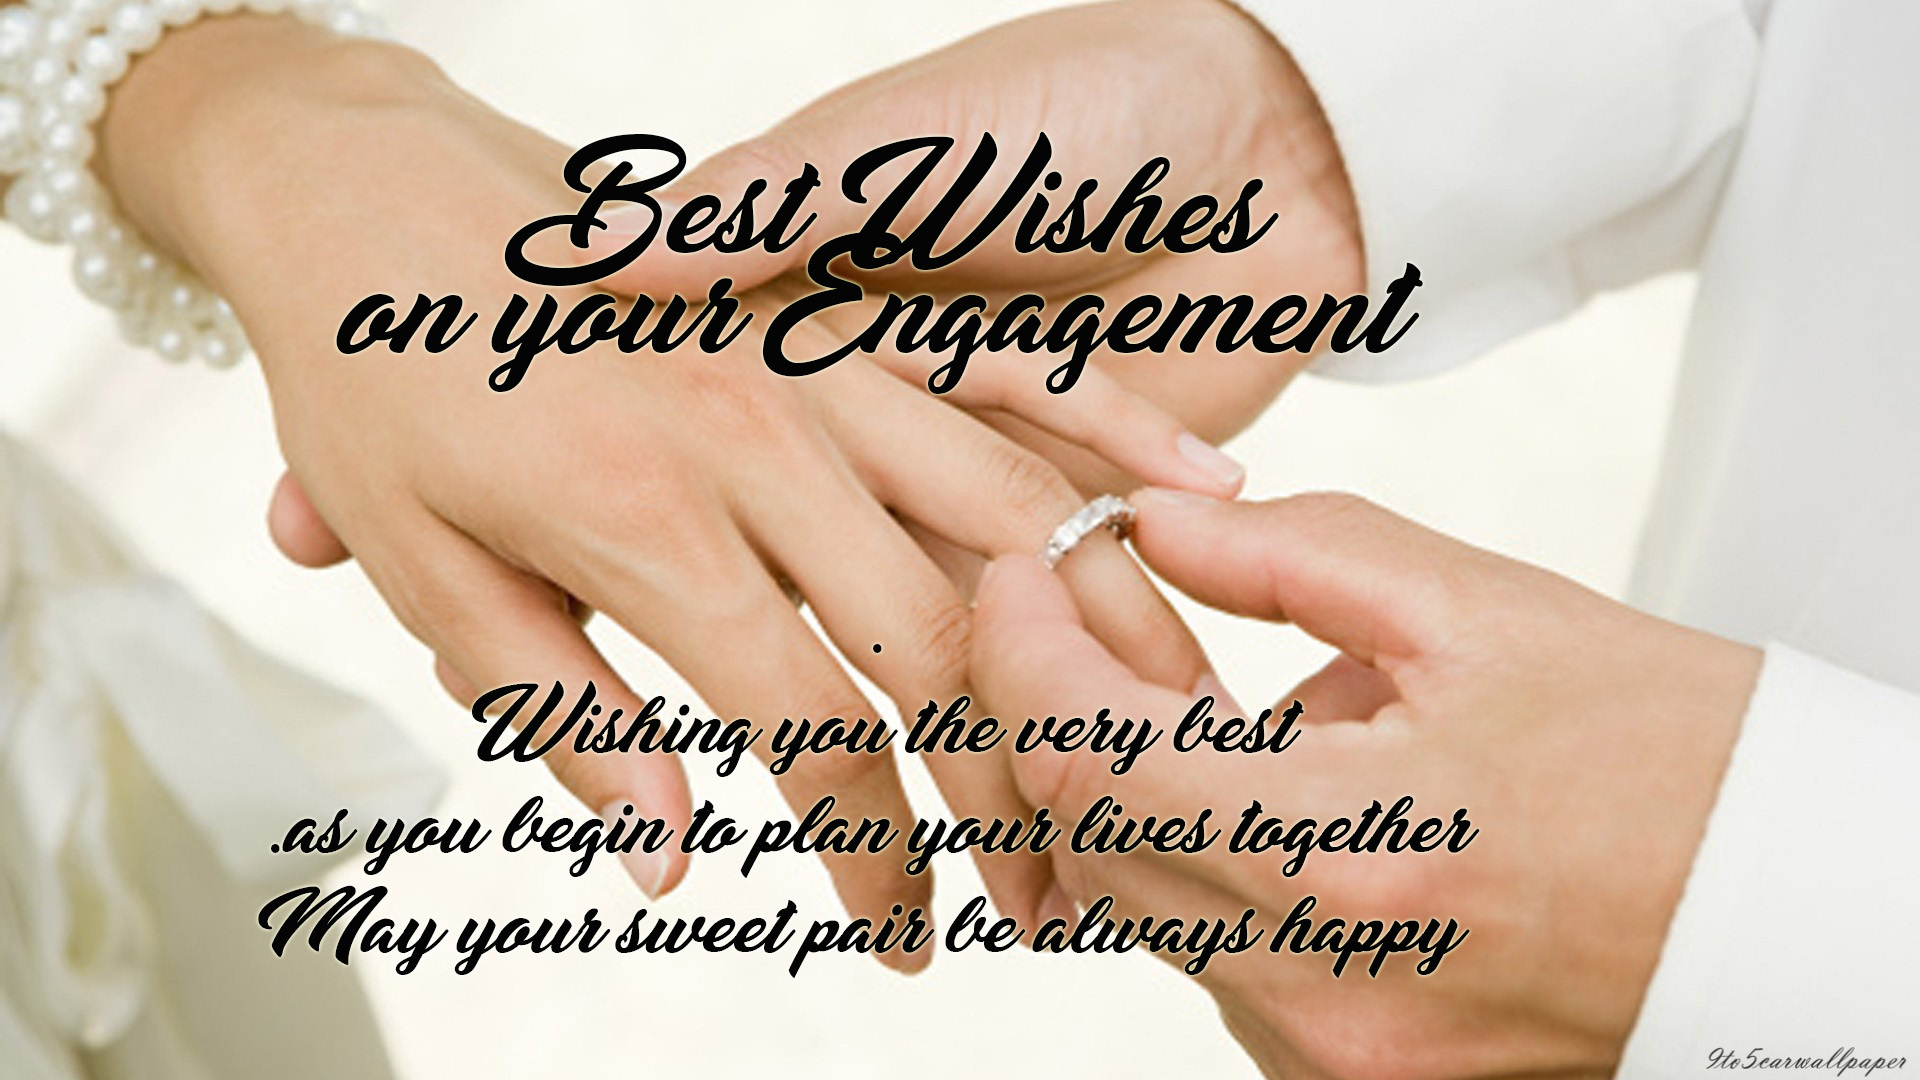 best-wishes-on-your-engagement-quotes-images-posters-2018